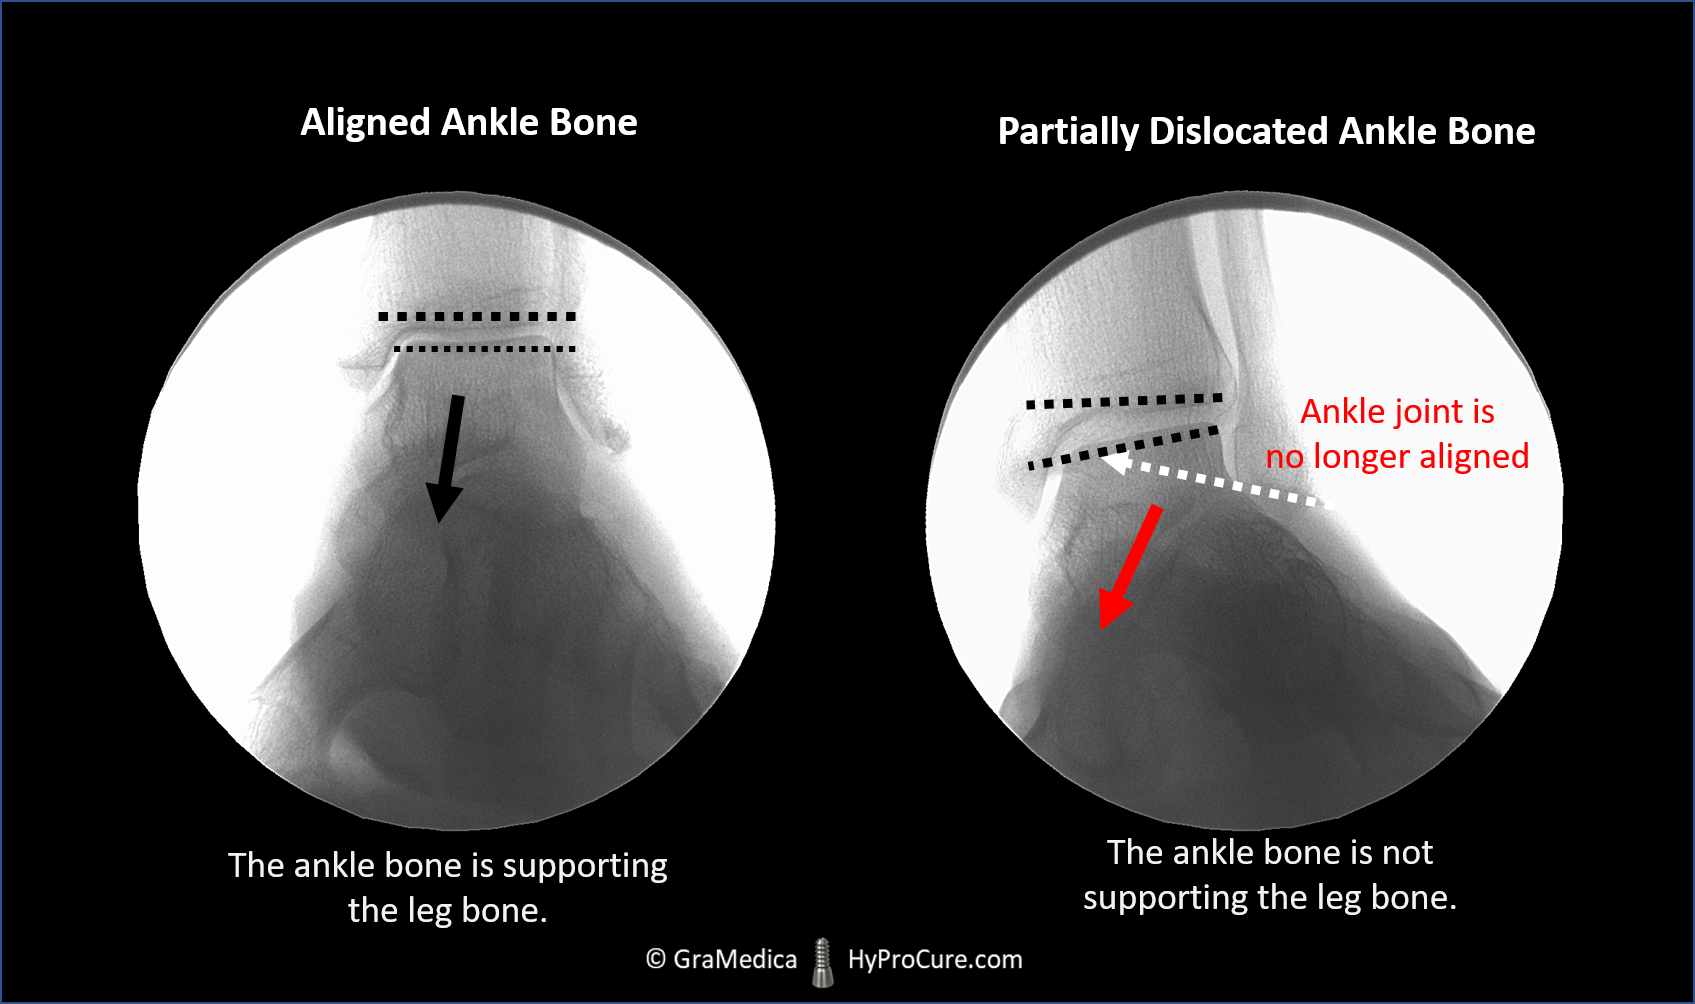 Ankle Joint X-ray showing aligned and partially dislocated ankle bone